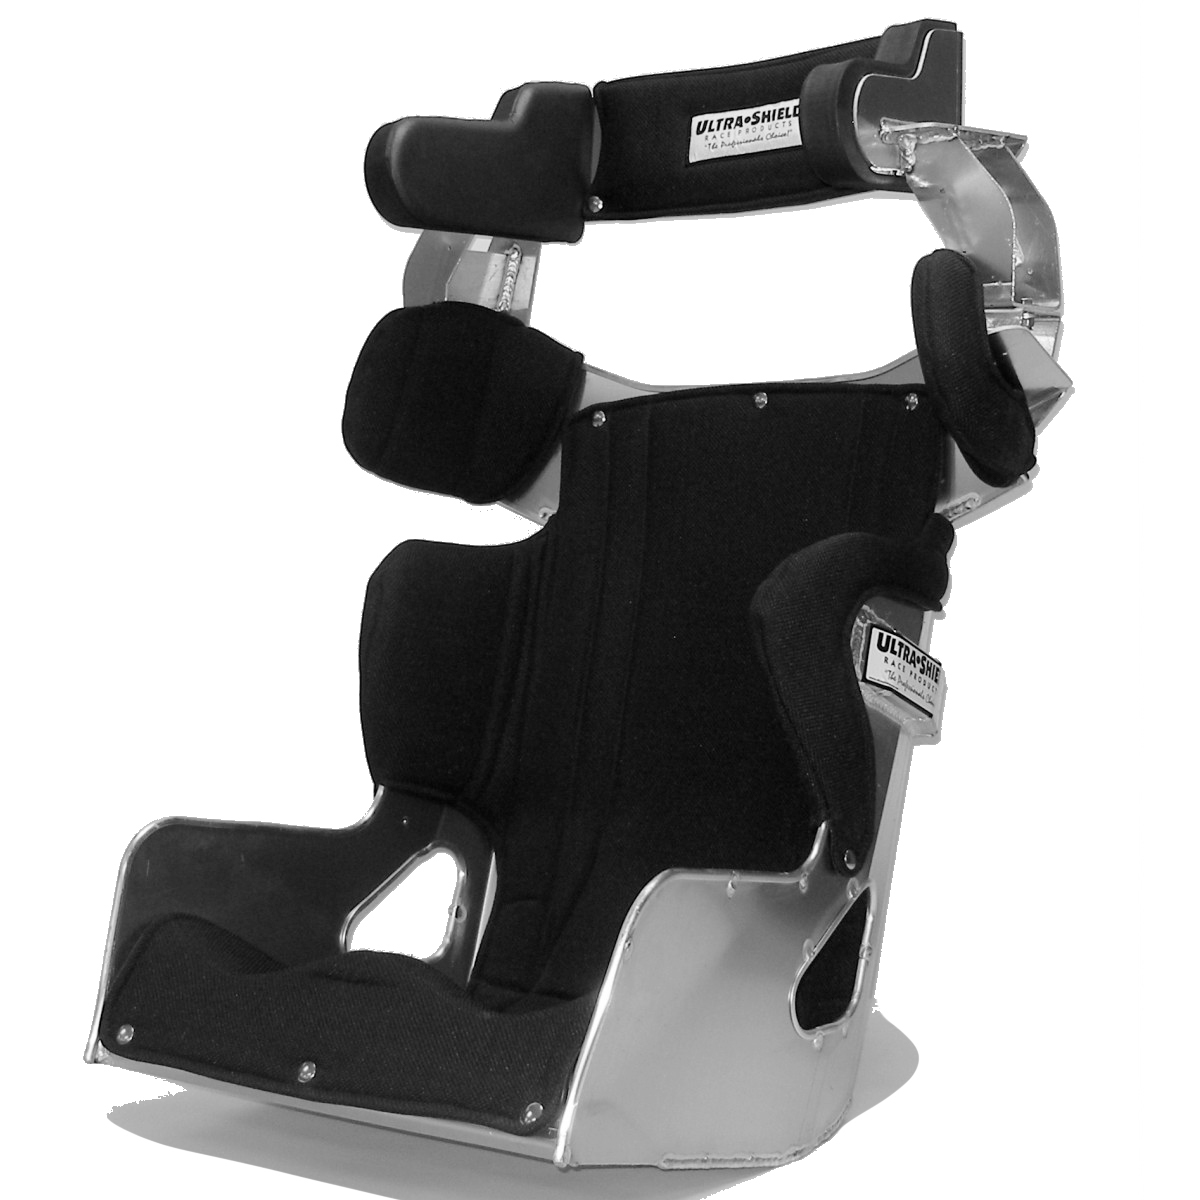 Ultra Shield EF28200 Seat, 2019 Economy Full Containment Halo, 18 in Wide, 20 Degree Layback, Snap Cover Included, Aluminum, Natural, Each